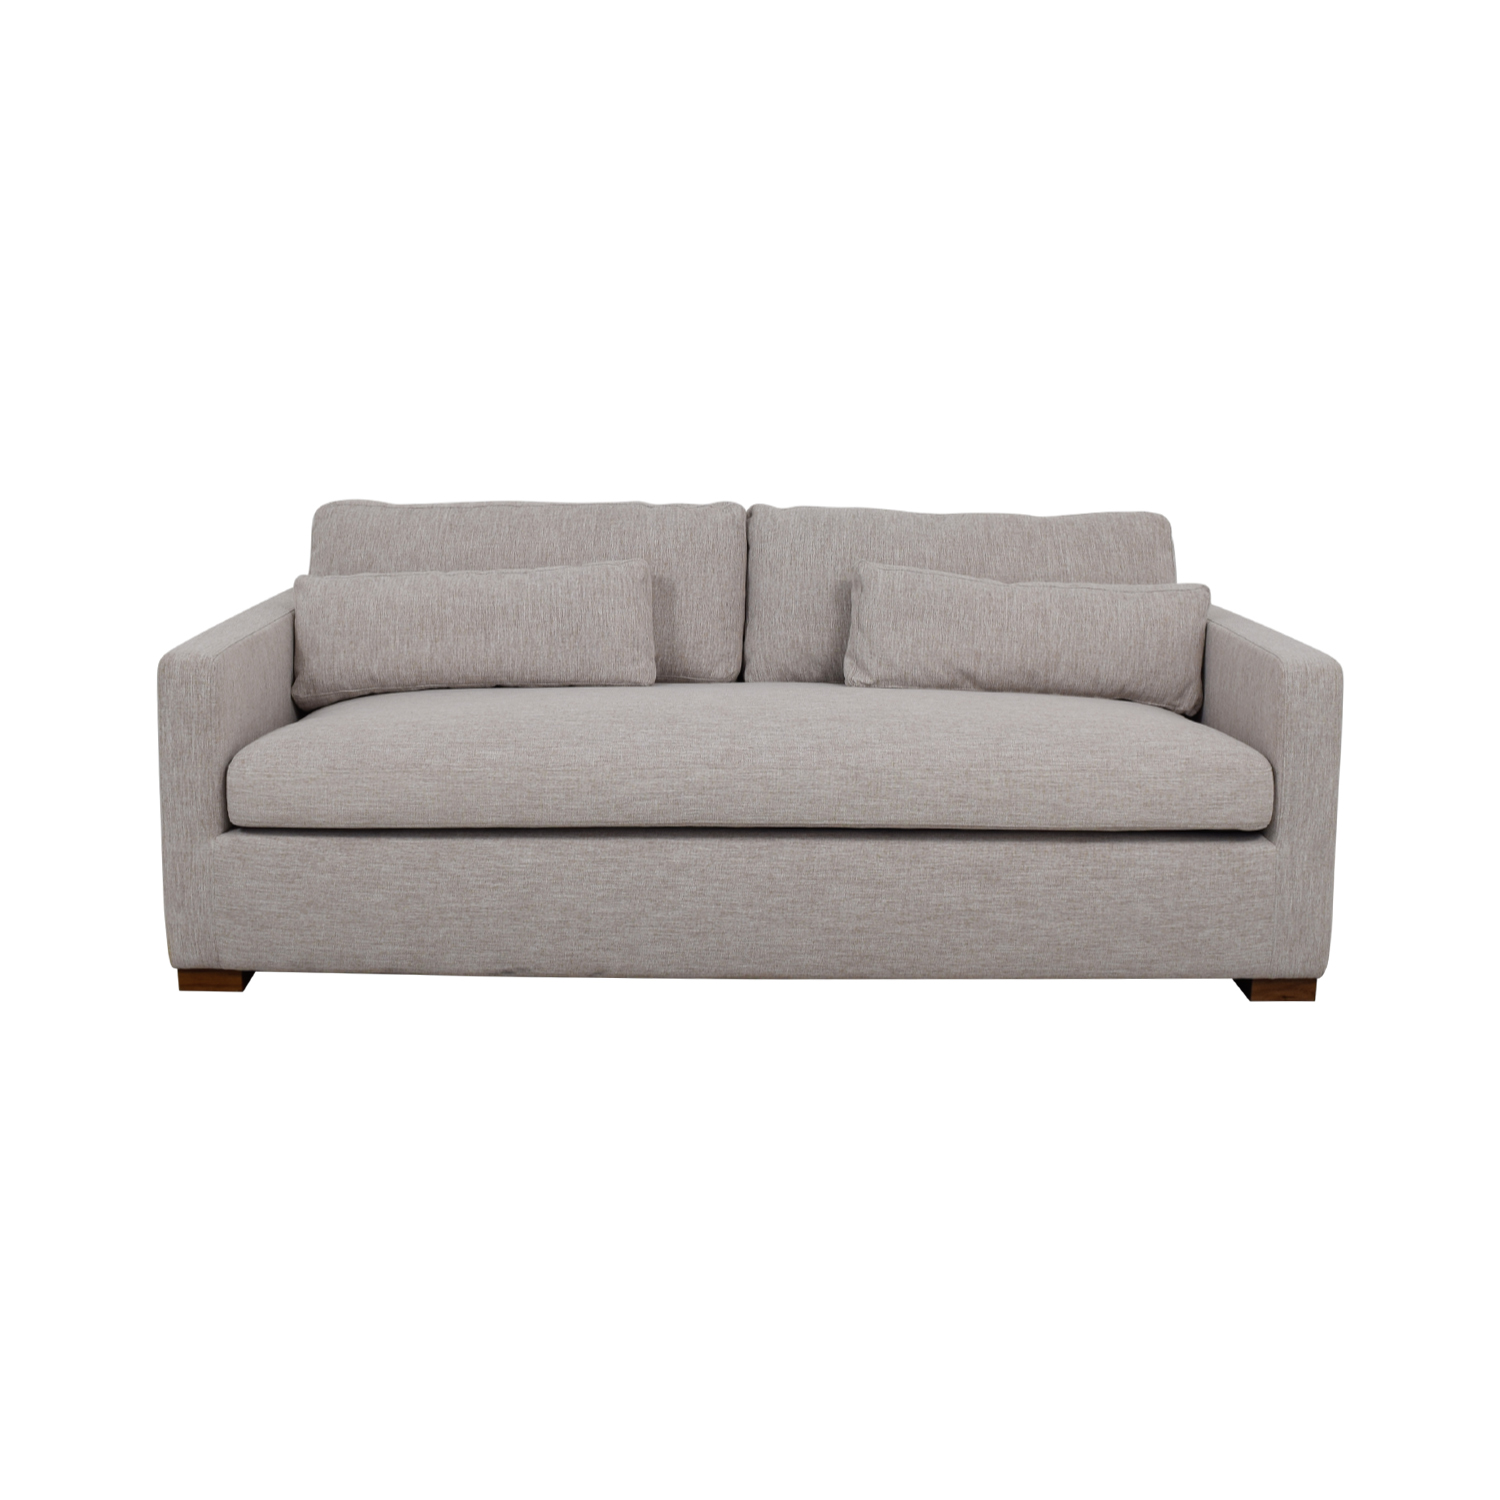 Charly Wheat Single Cushion Sofa Clic Sofas